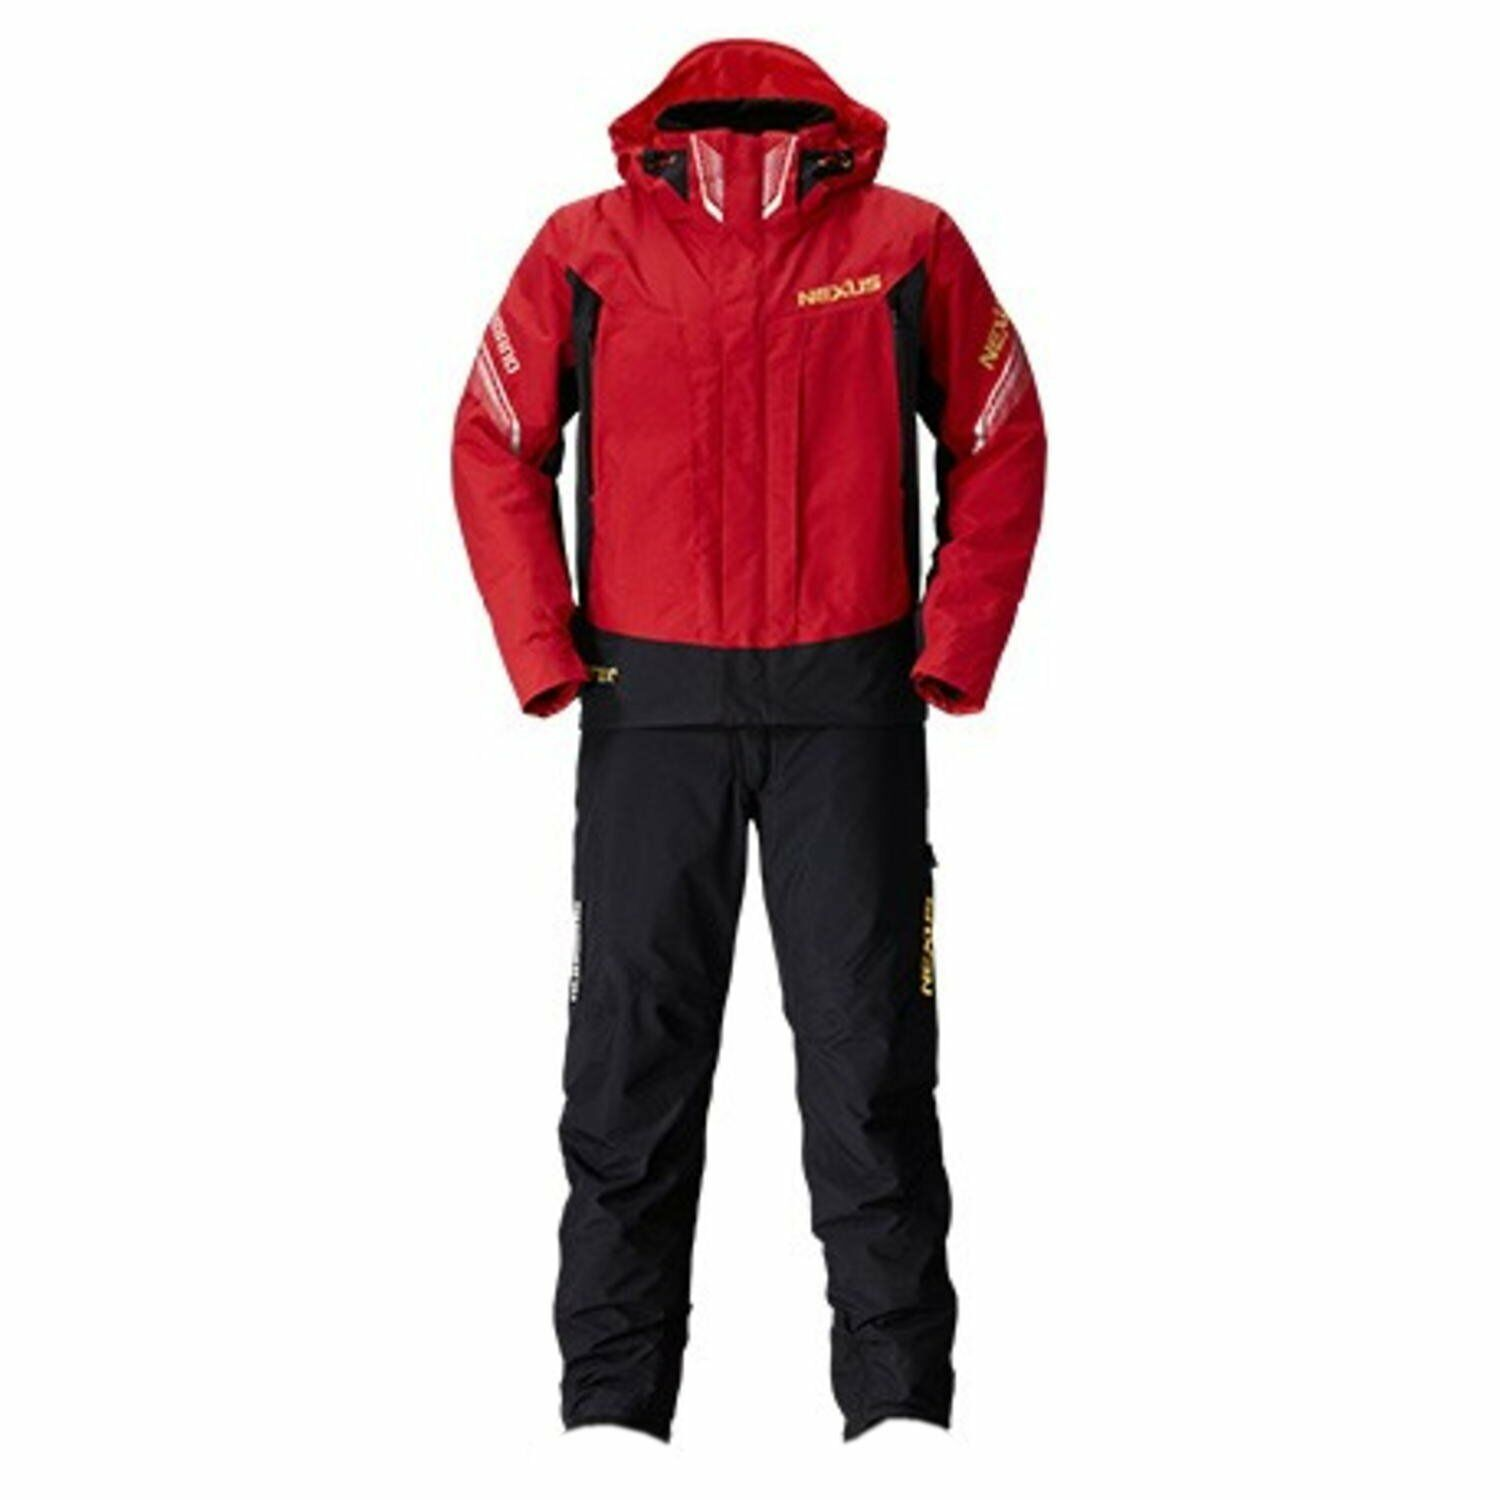 SHIMANO NEXUS GORE-TEX Cold Weather Suits RB-114P M L XL RED Fishing Japan NEW